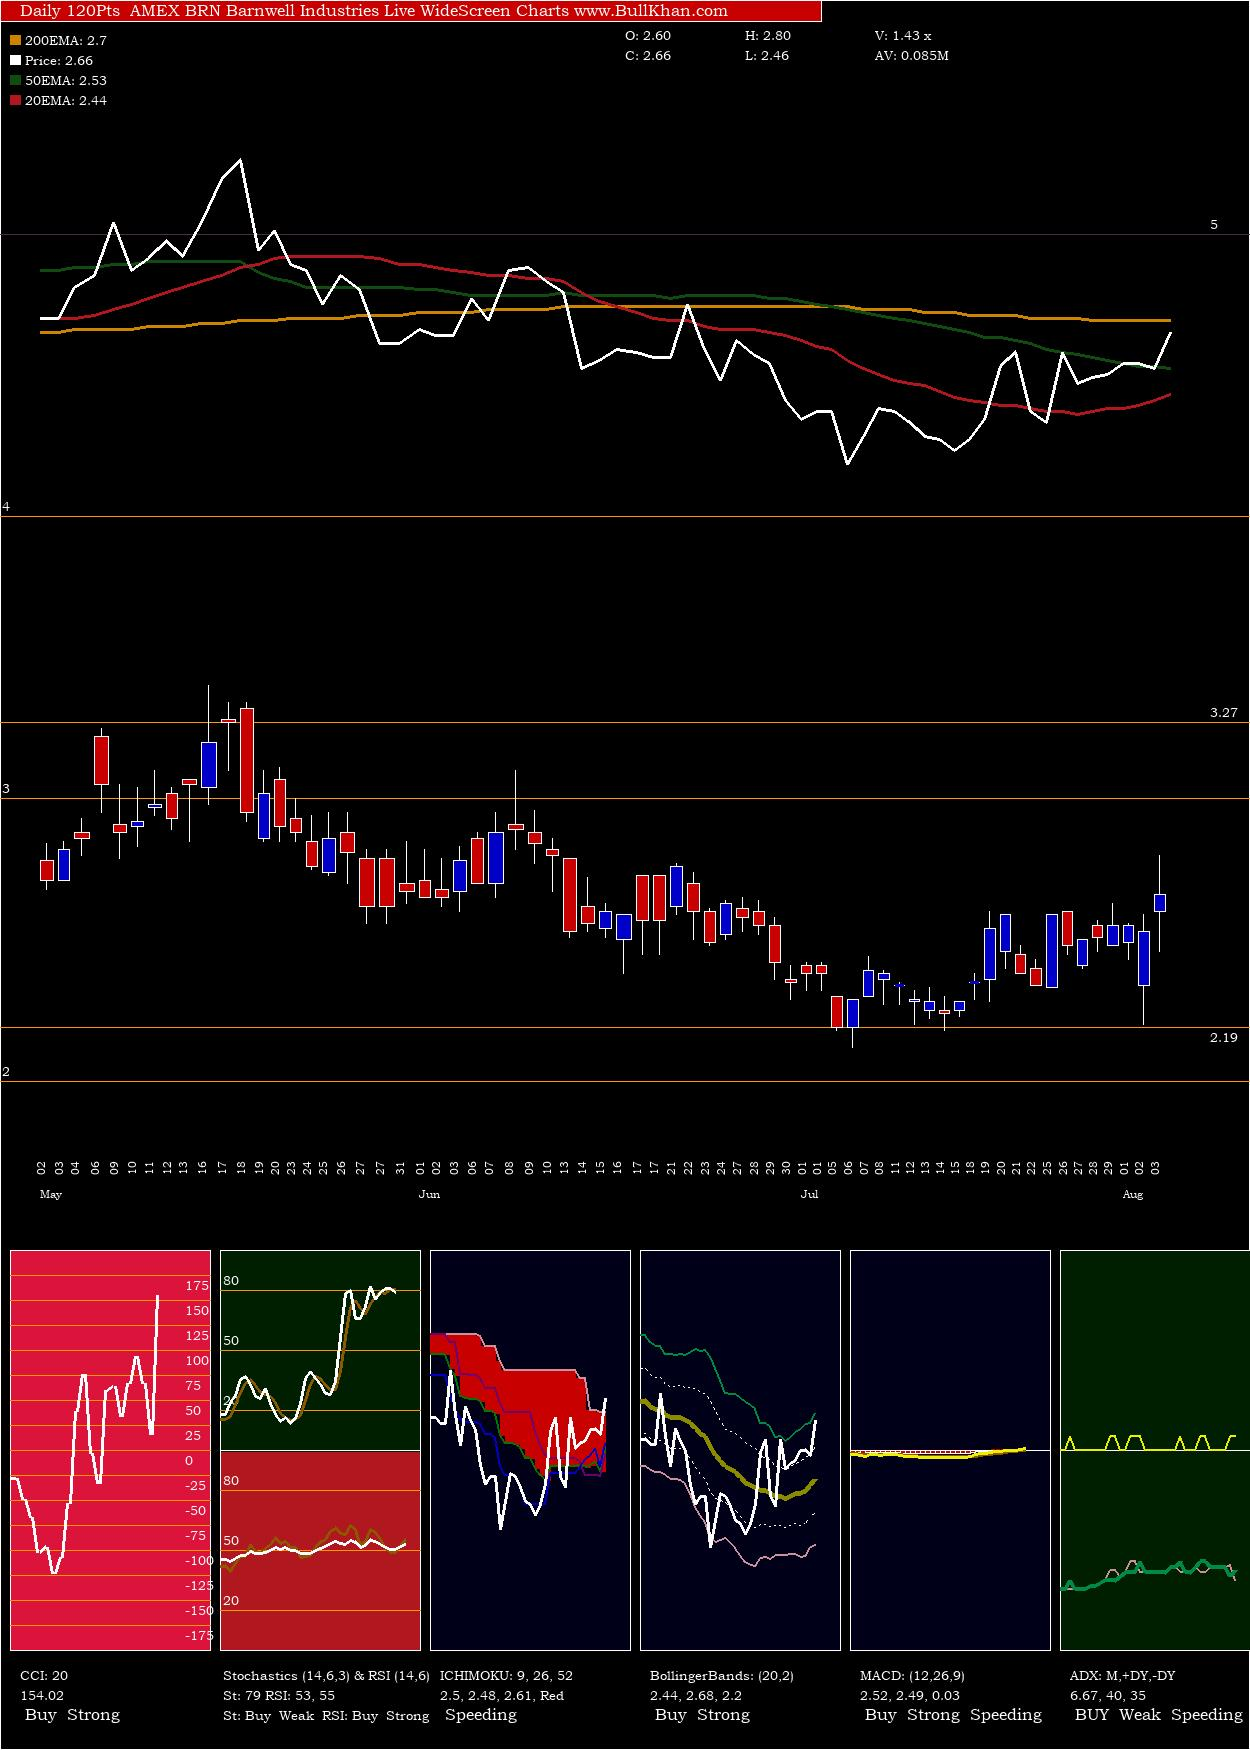 Barnwell Industries charts and indicators